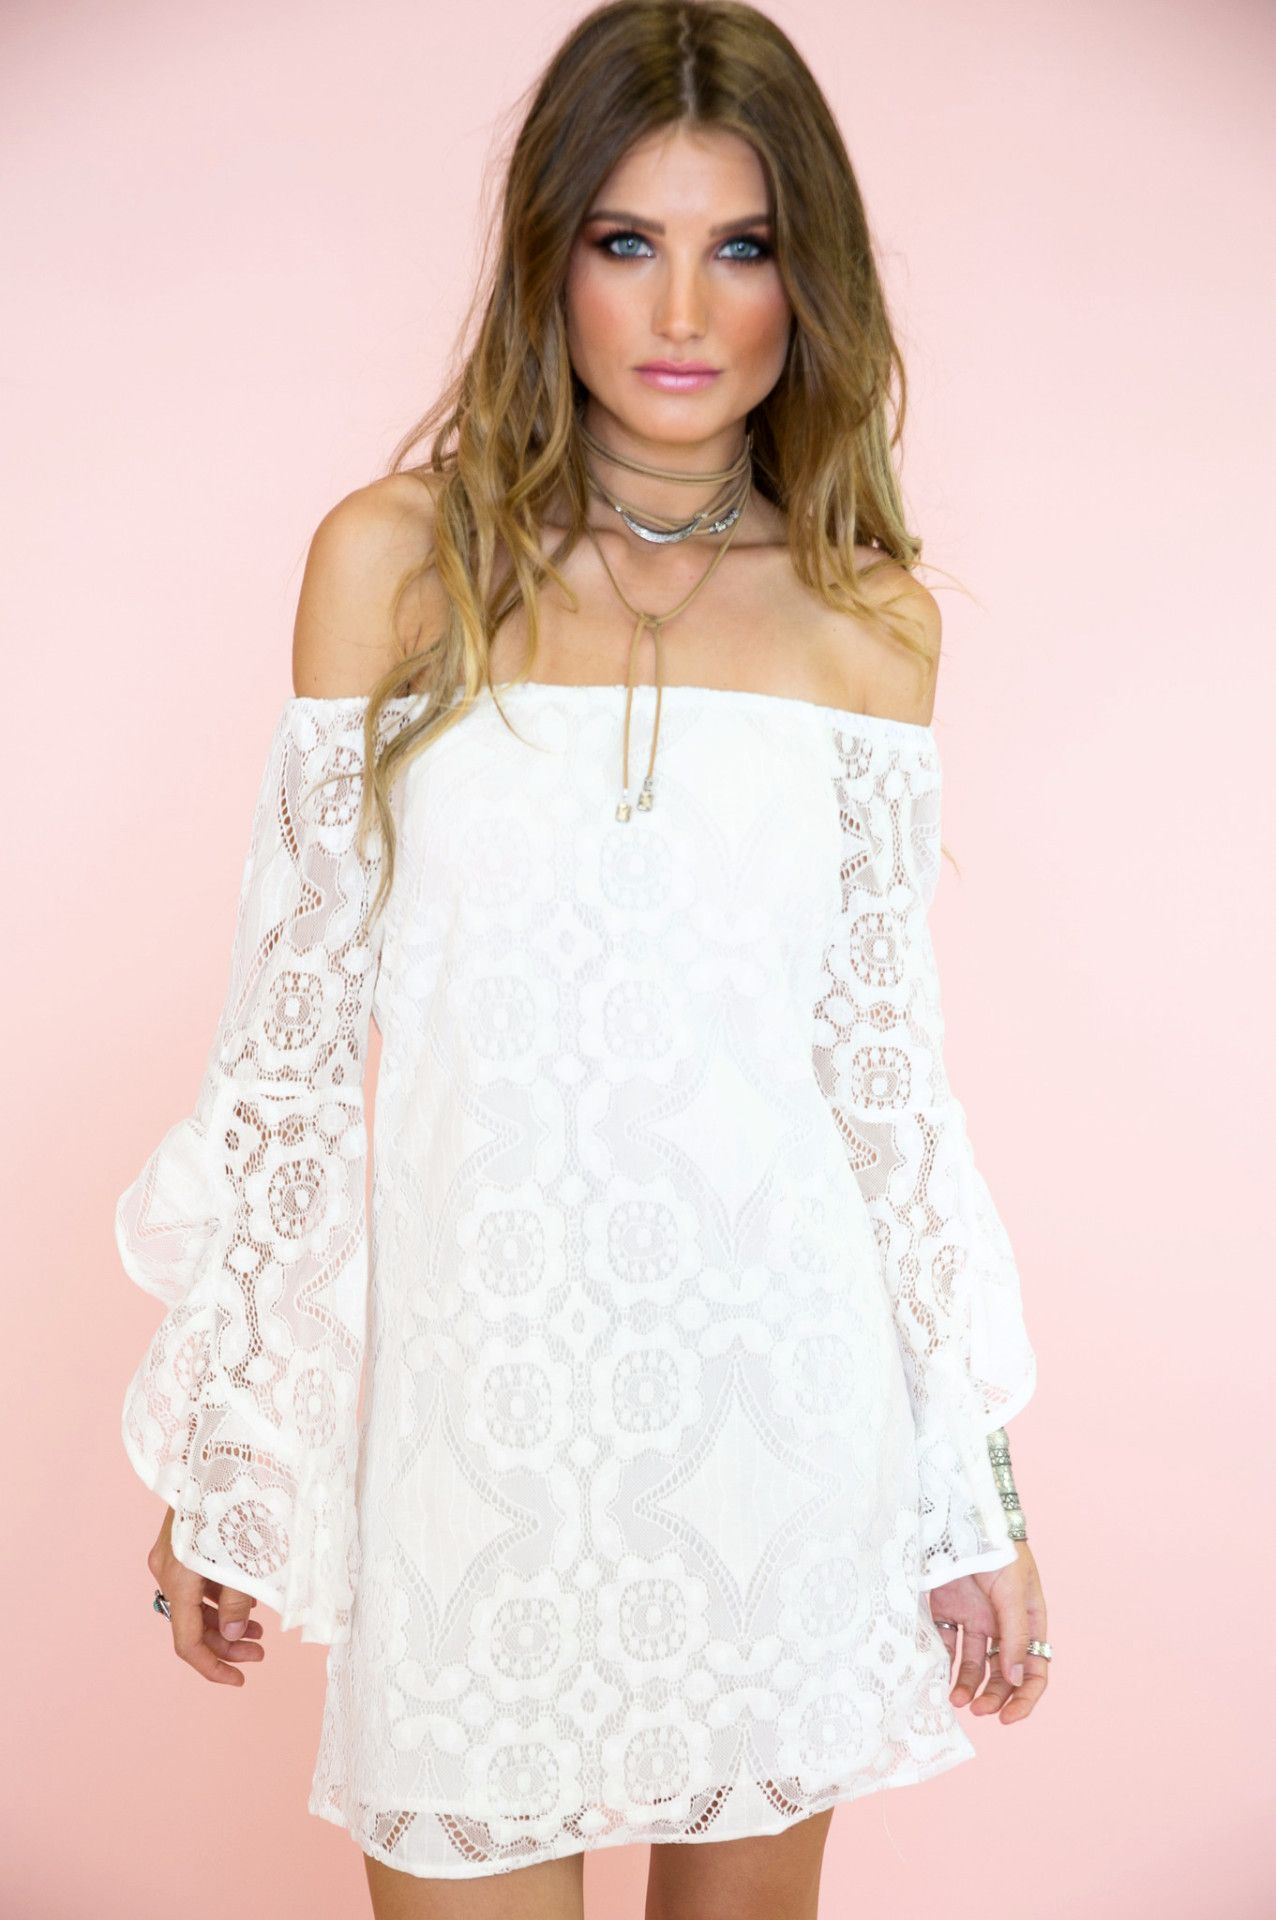 Roxy Lace Off Shoulder Bell Sleeve Dress - White | Roxy, Sleeved ...